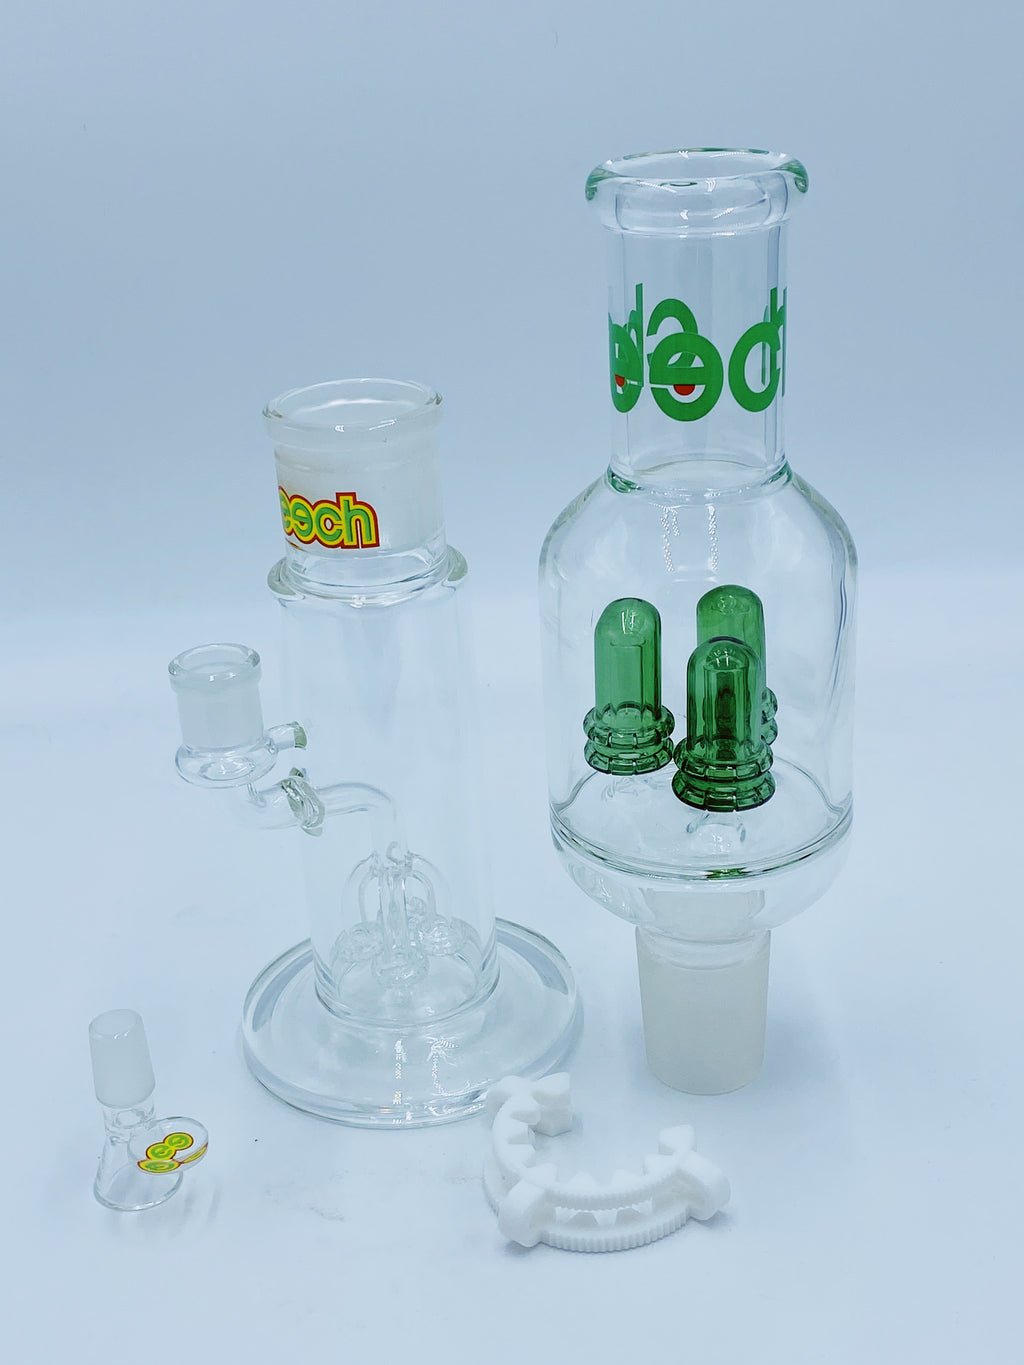 CHEECH GLASS QUAD TO TRIPLE BUILD A BONG SET - Smoke Country - Land of the artistic glass blown bongs